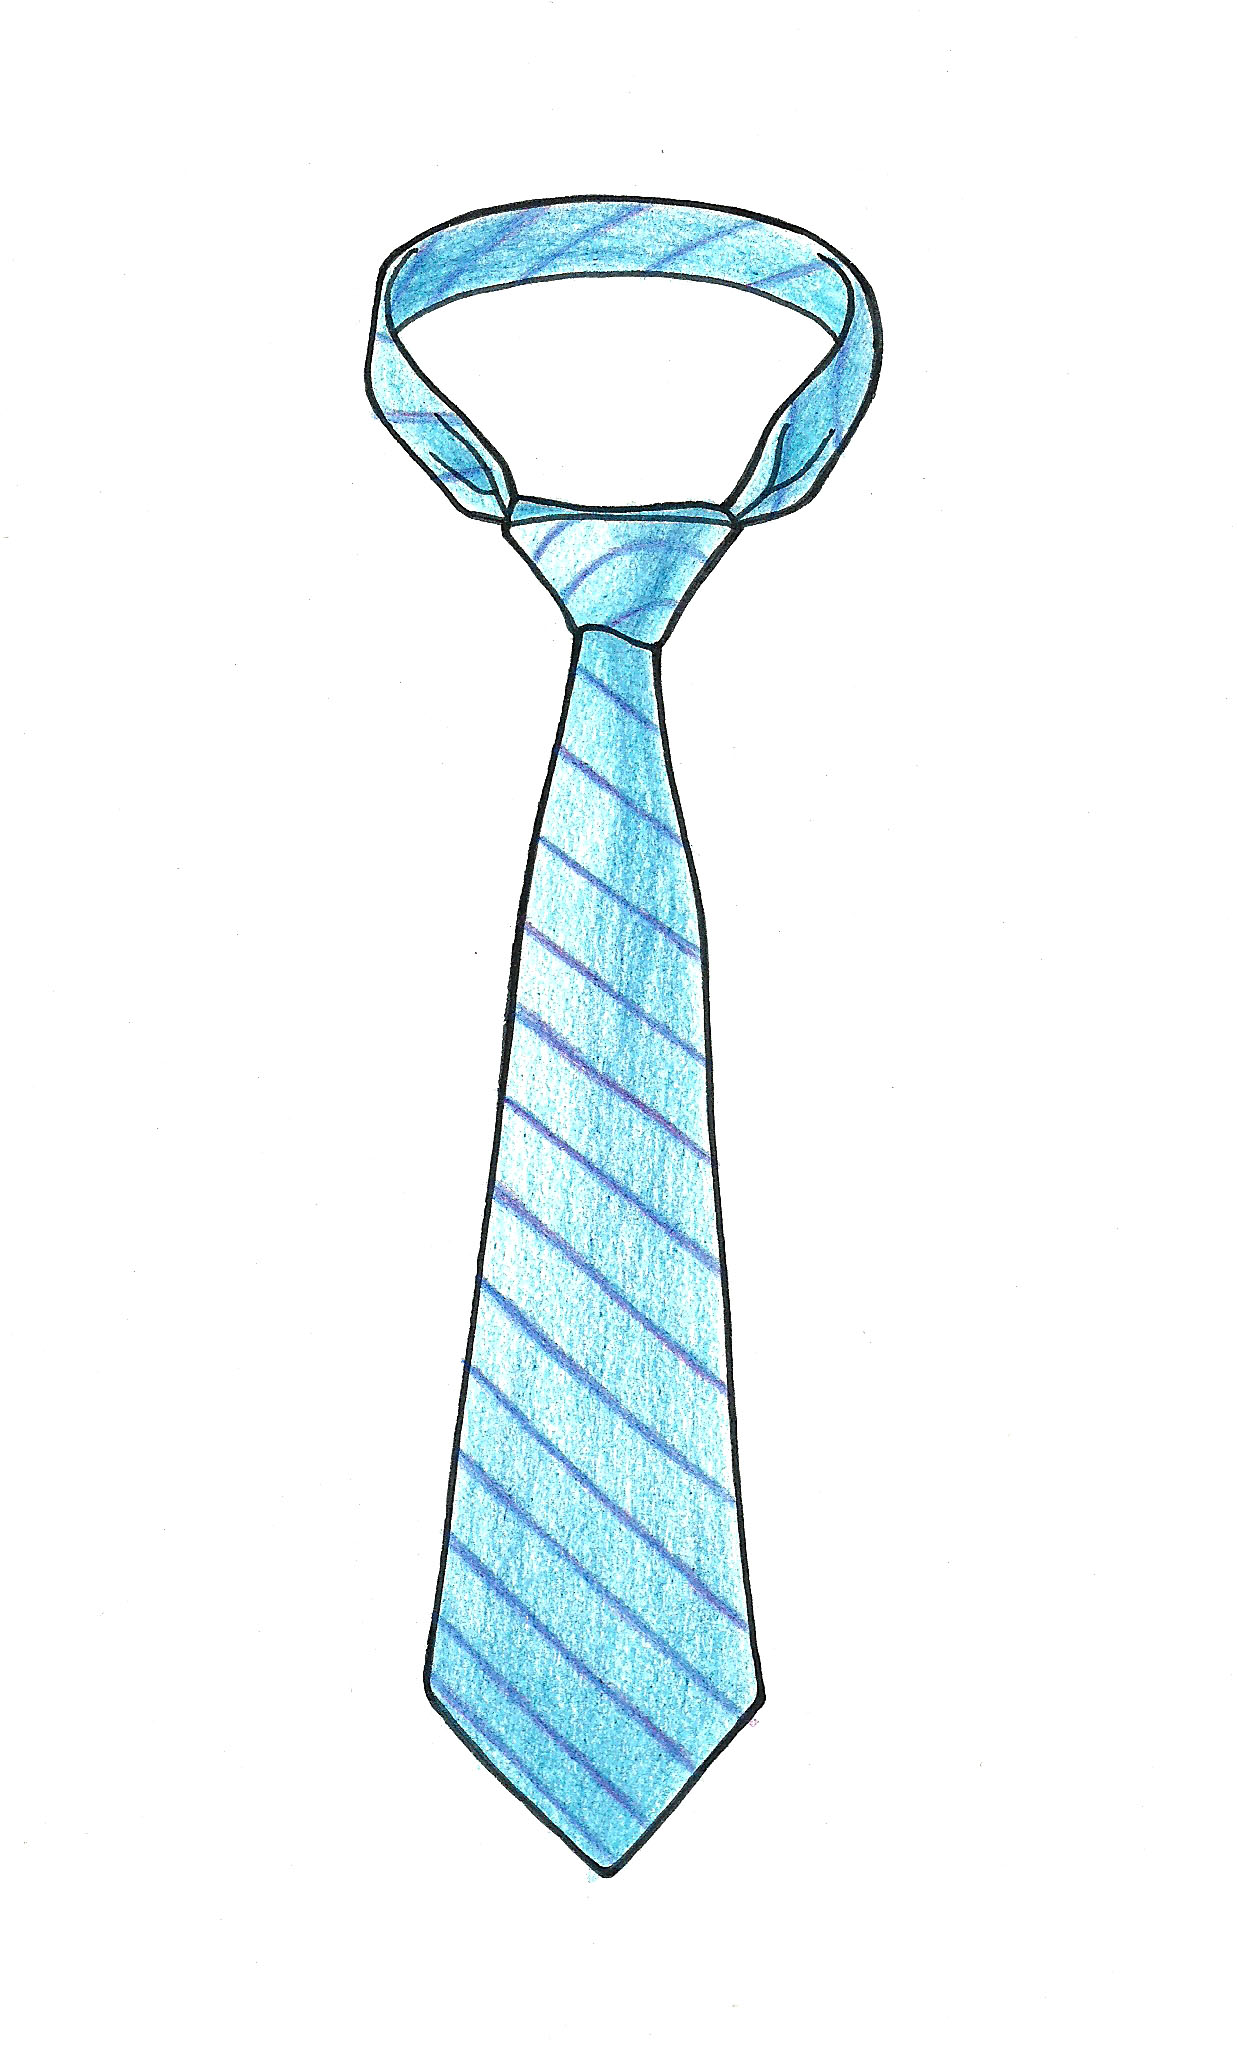 The Best Free Tie Drawing Images Download From 50 Drawings Of How To A 1237x2068 15 It Opinions On Draw